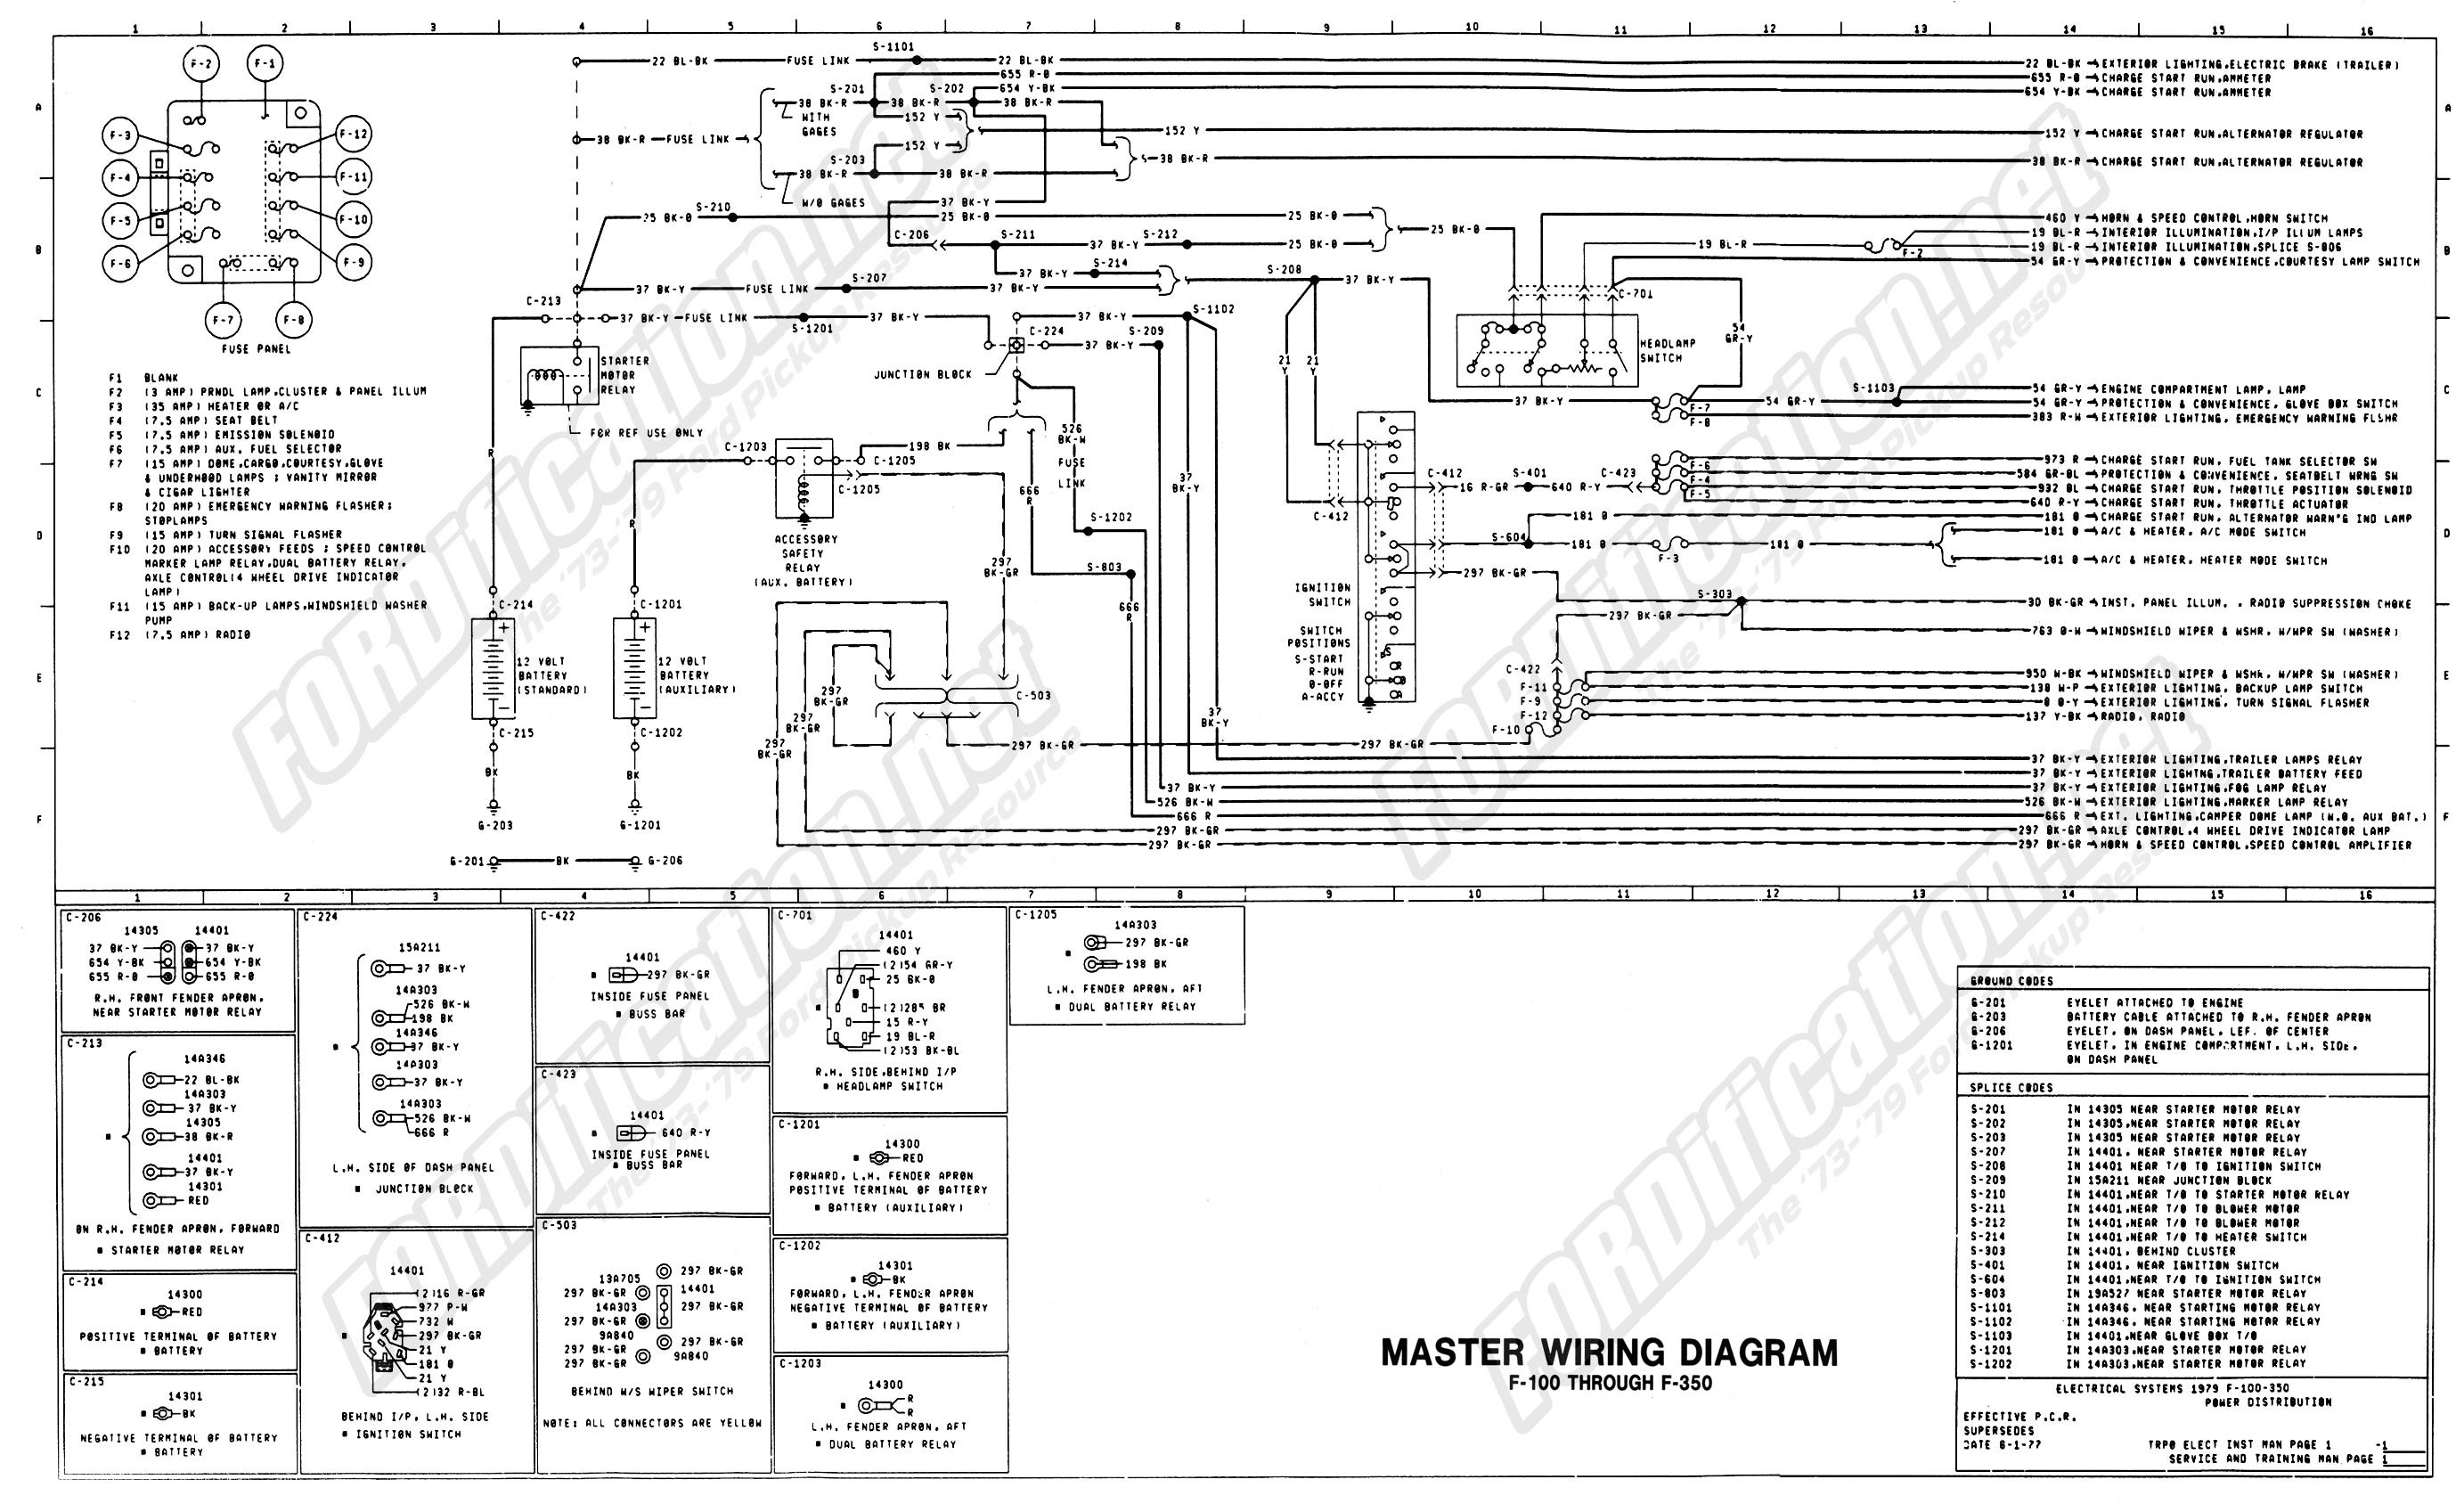 Ford Transit Engine Diagram Wiring Diagram 1979 ford F150 Ignition ...